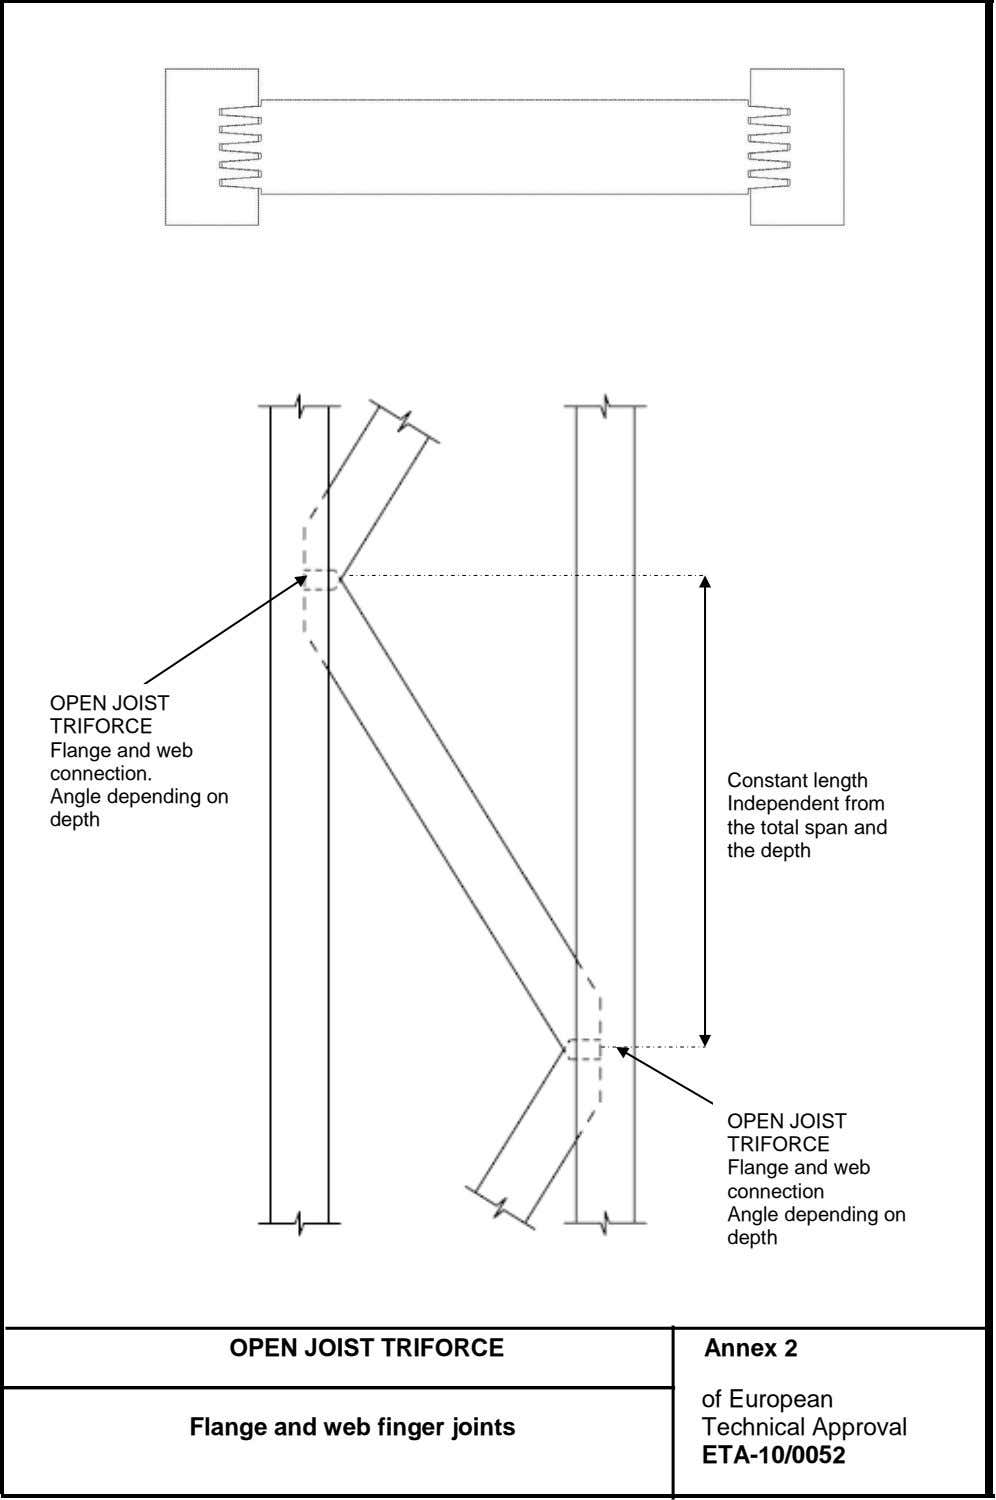 OPEN JOIST TRIFORCE Flange and web connection. Angle depending on depth Constant length Independent from